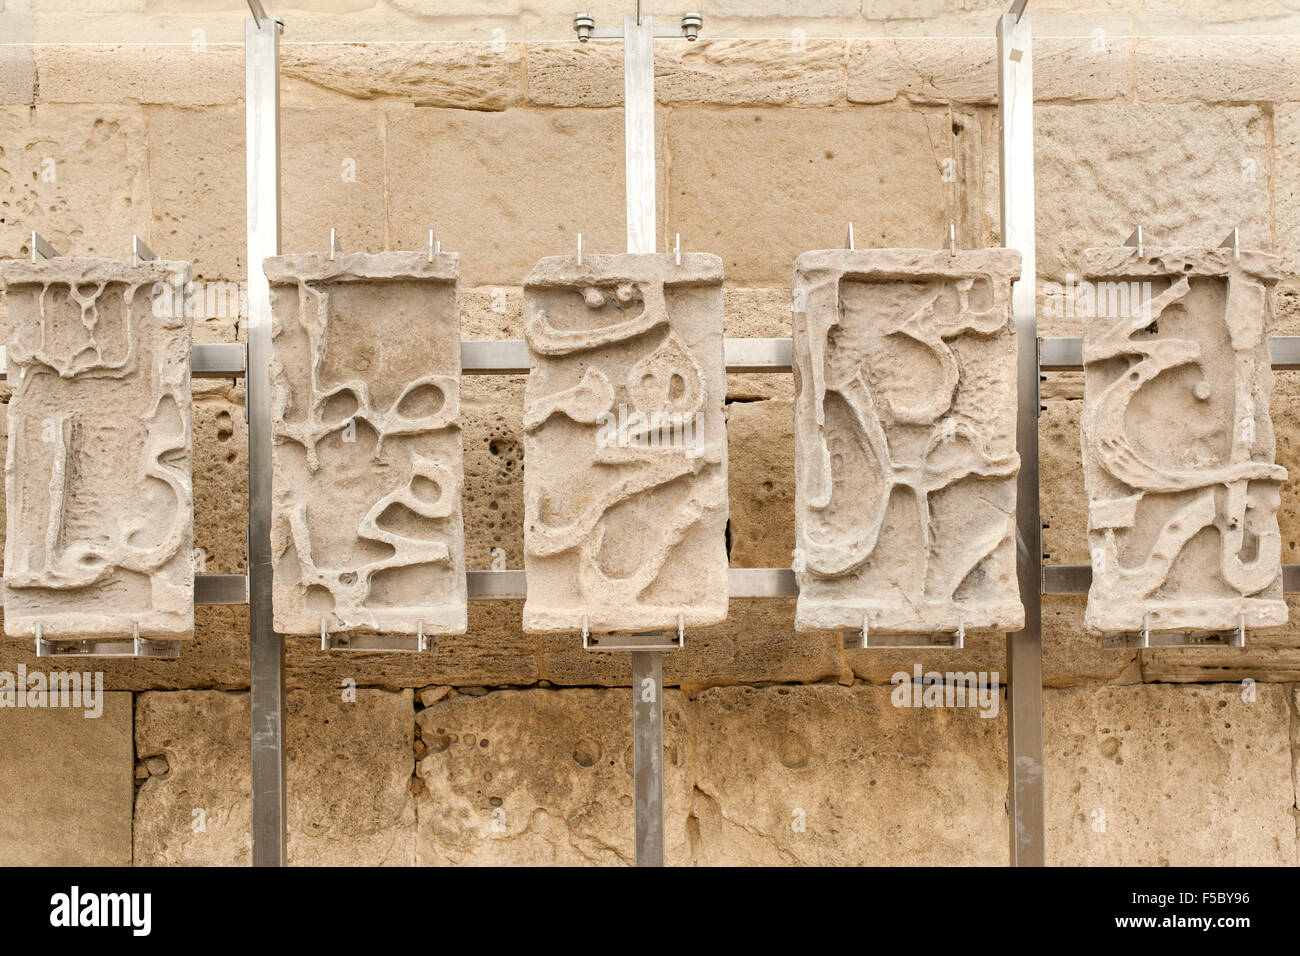 Fragments of the stone frieze of the Bayil Fortress in the Palace of the Shirvanshahs, in Baku, the capital of Azerbaijan. - Stock Image